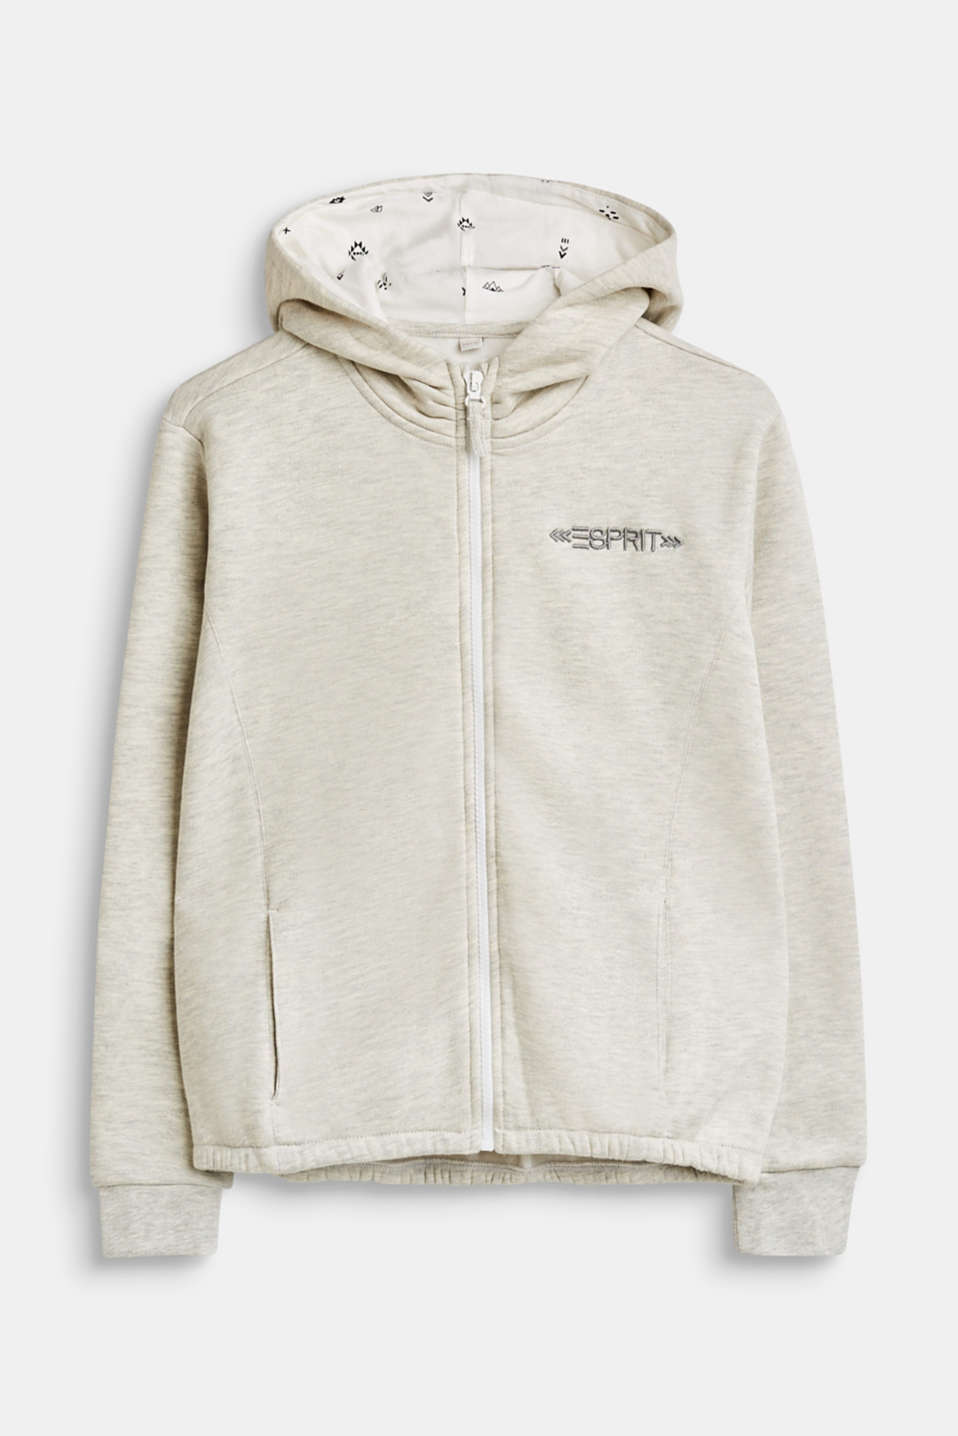 Esprit - Melange sweatshirt cardigan with hood